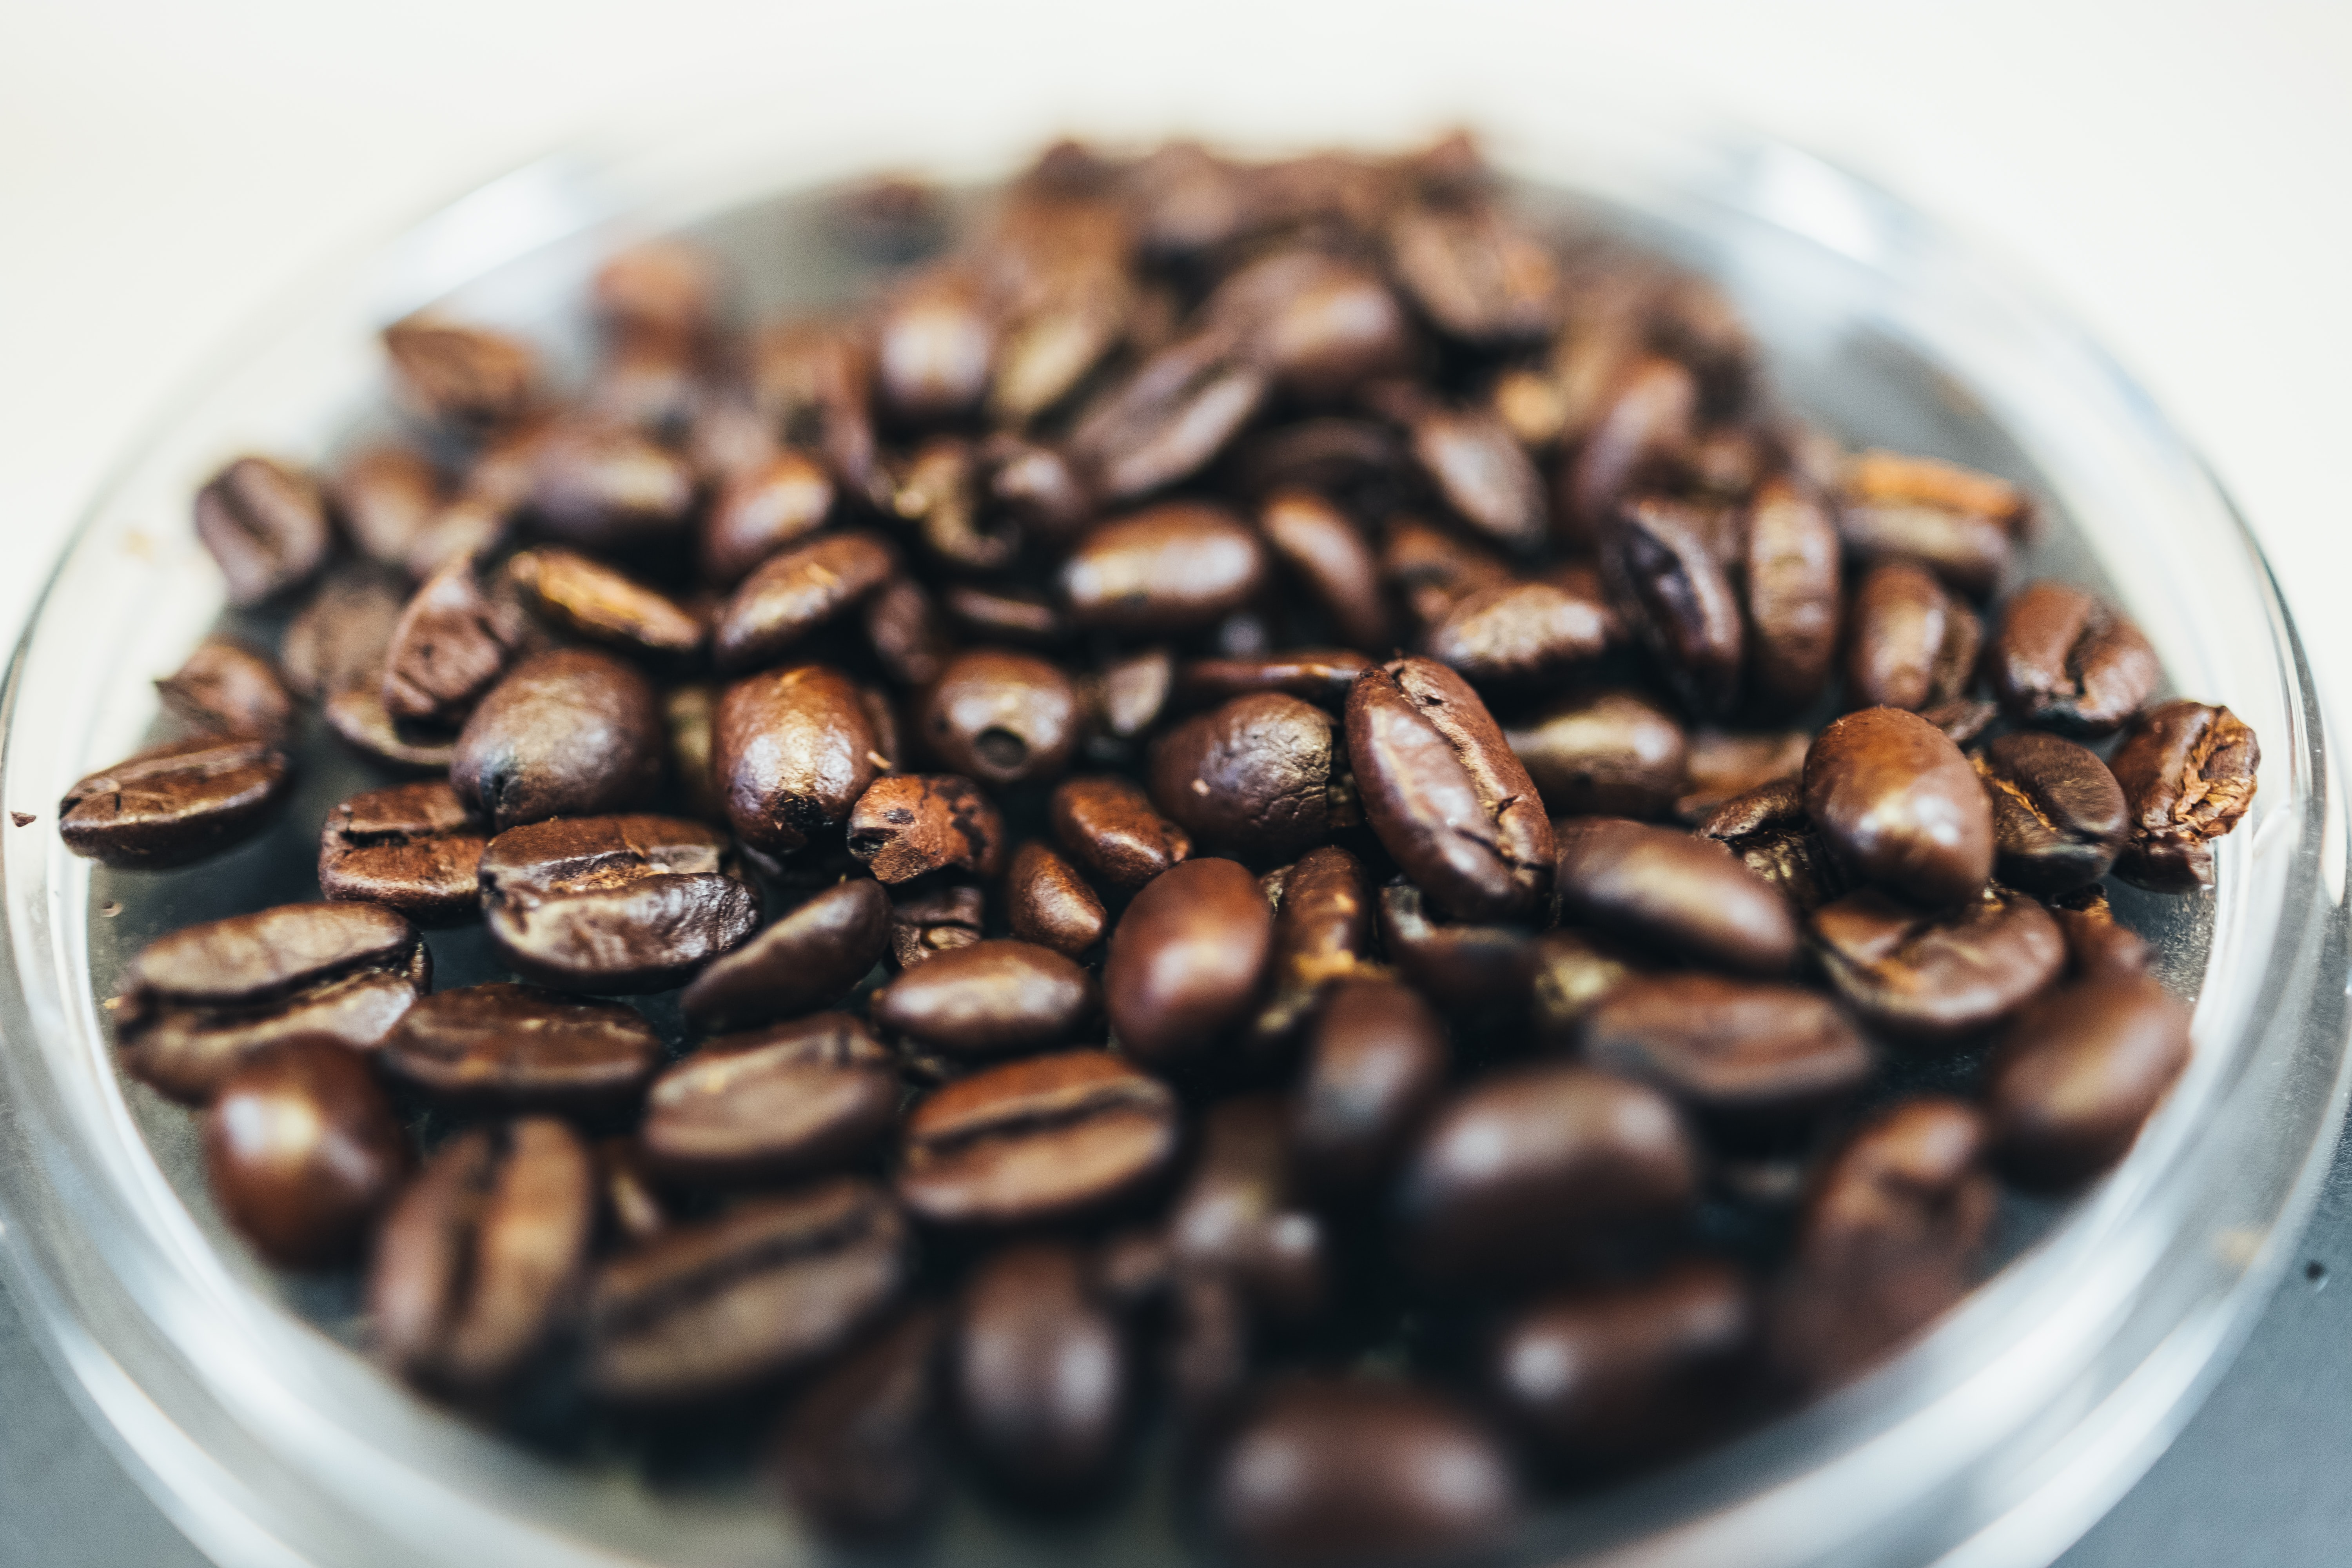 close-up photography of brown coffee beans